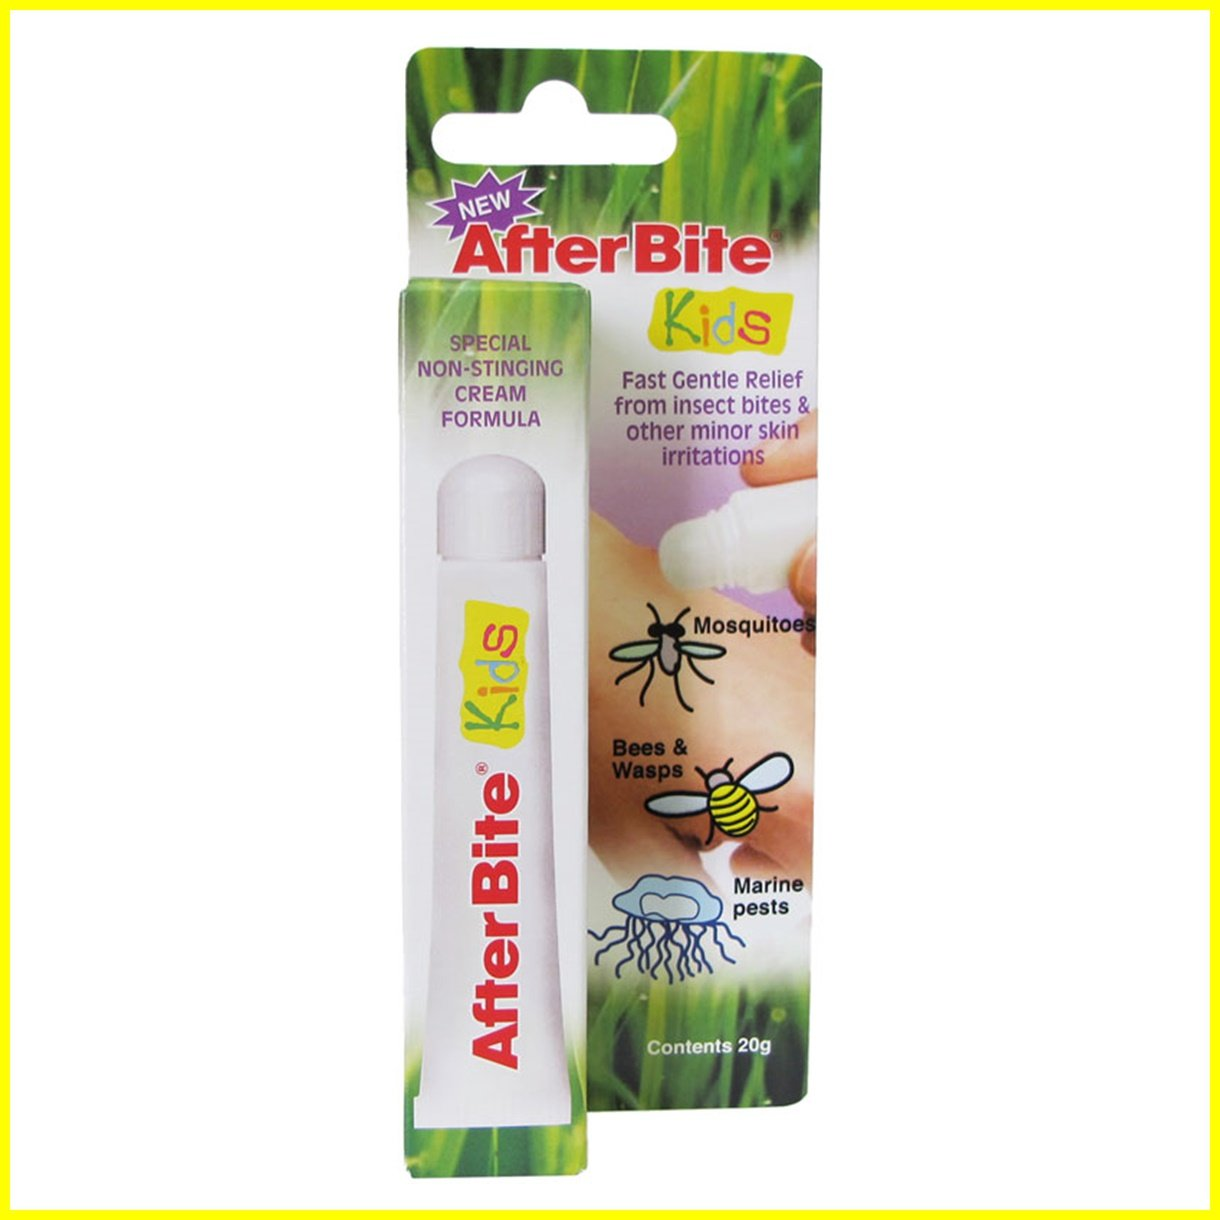 AfterBite KIDS Classic - Fast Gentle Relief from Insect Mosquito After Bite & other minor skin irritations - 1 ITEM 20g 021127-3